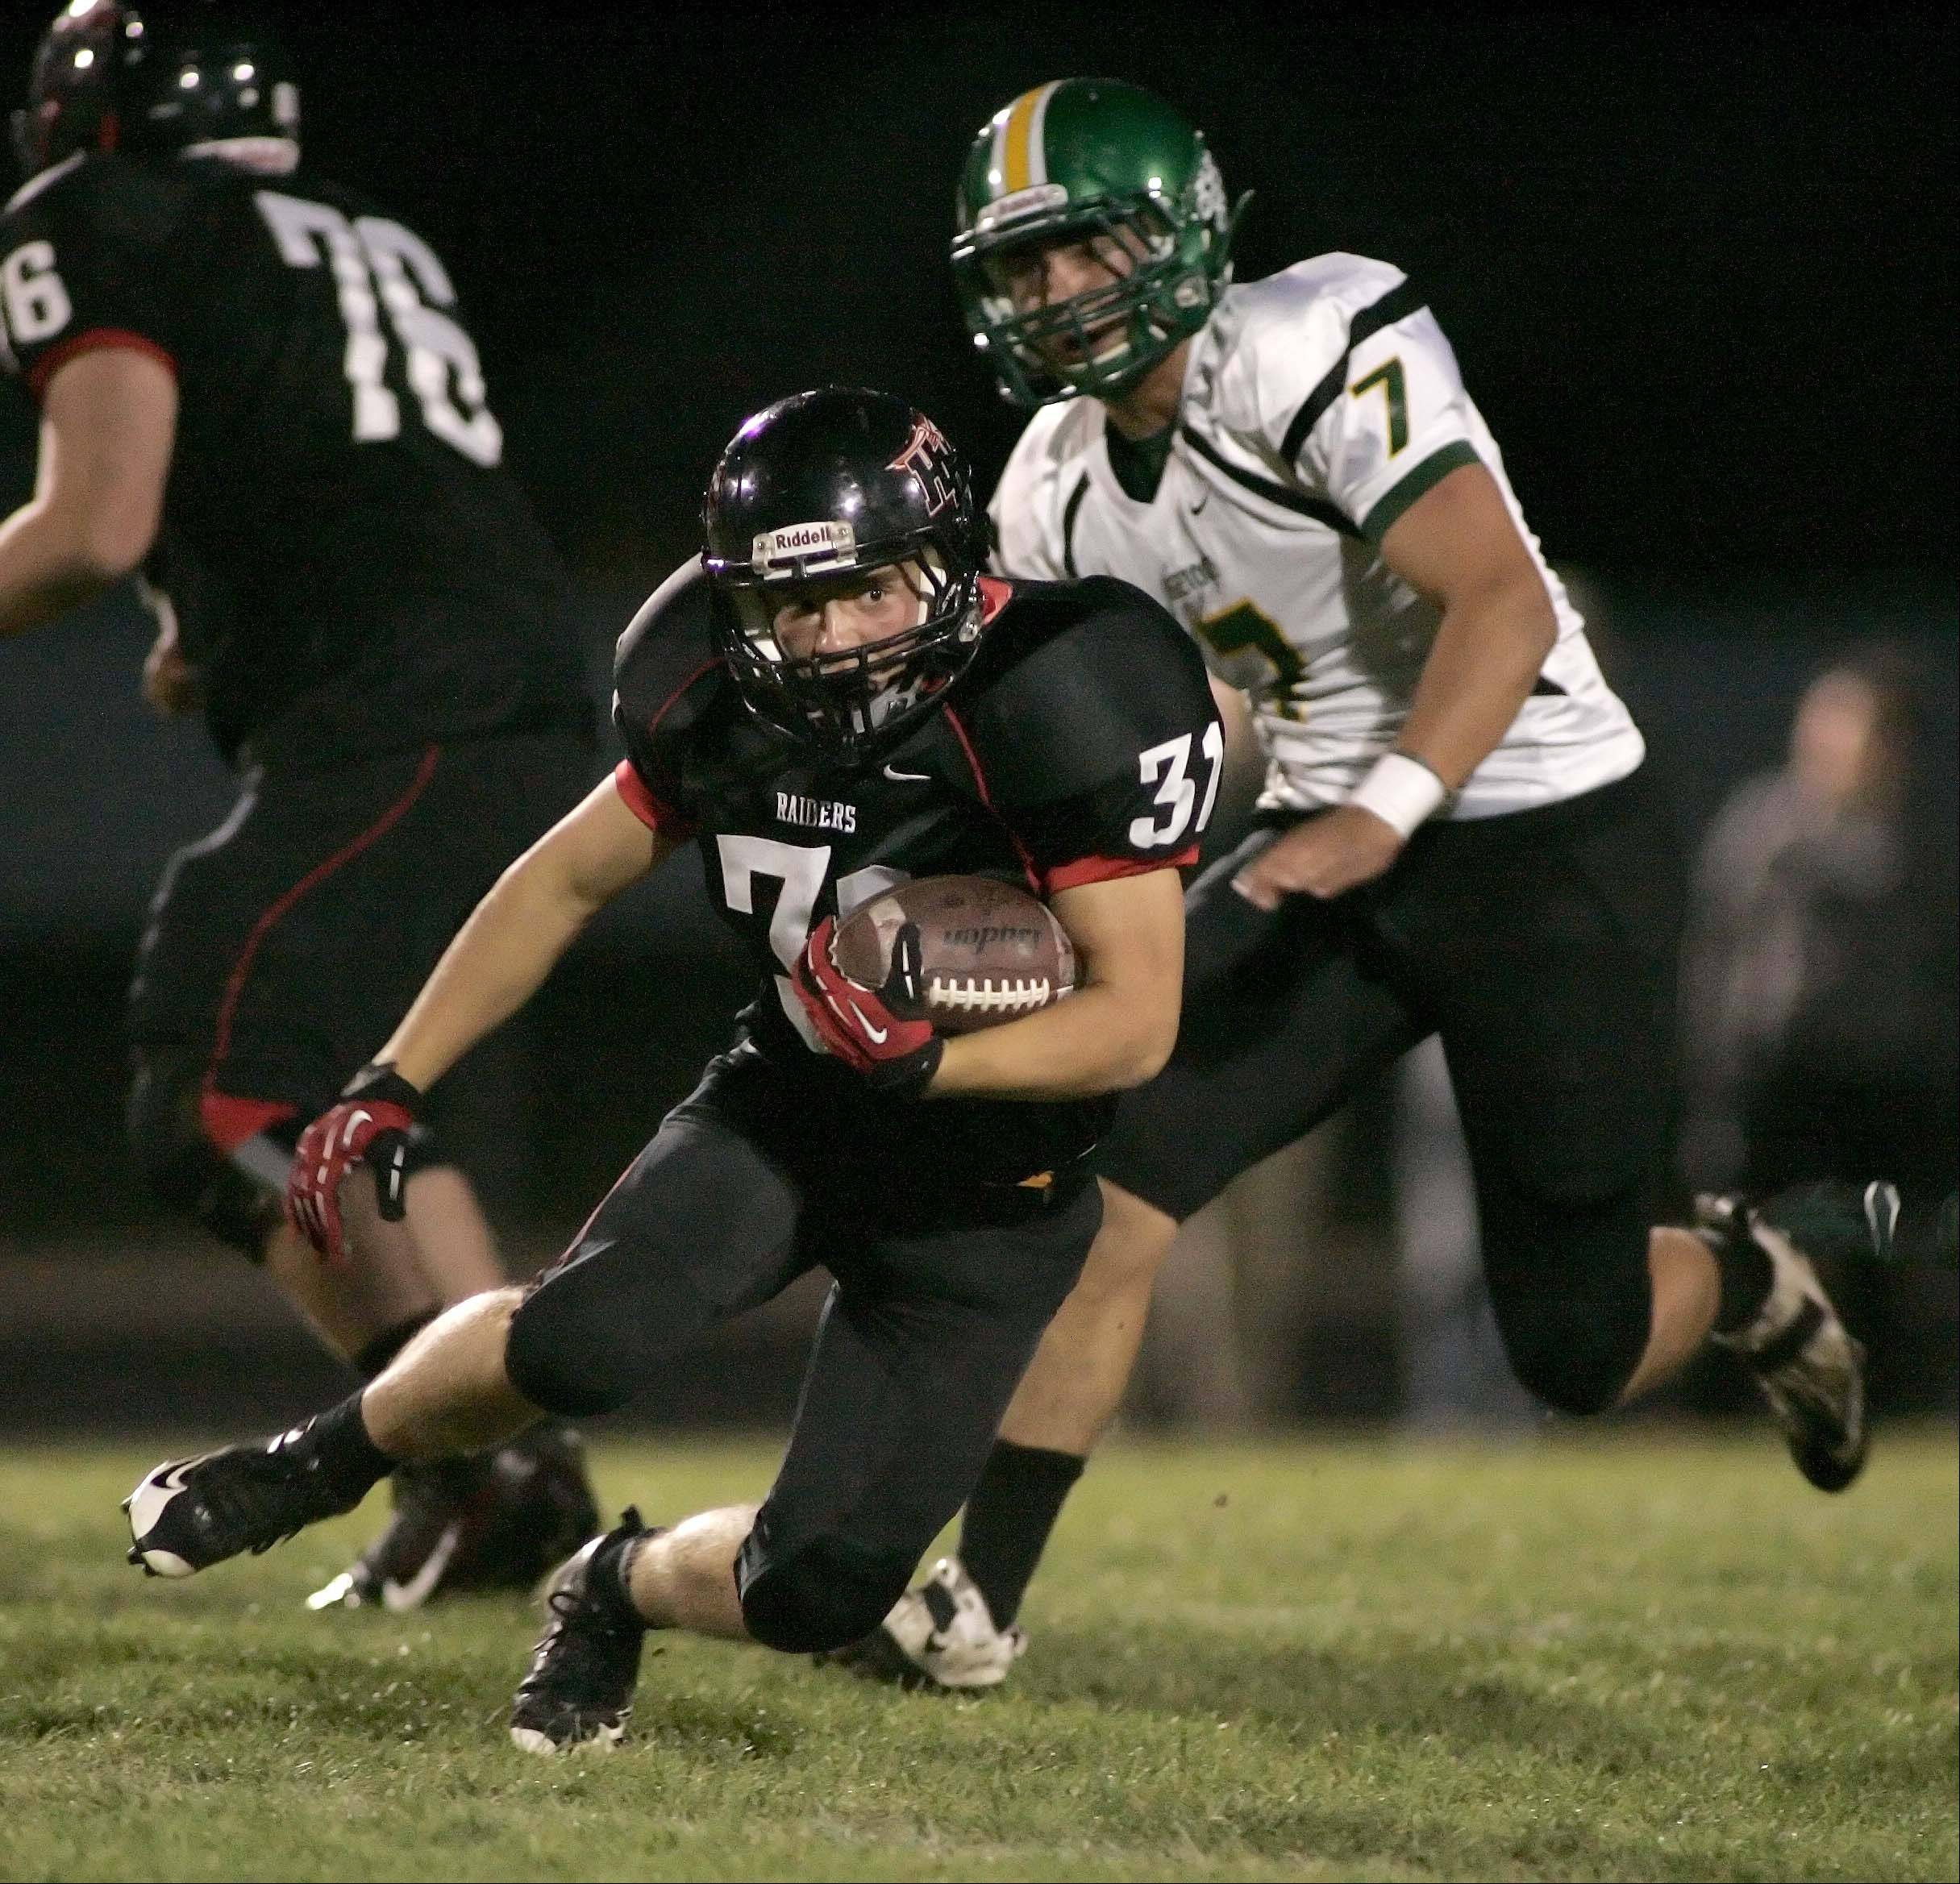 Images: Crystal Lake South vs. Huntley football